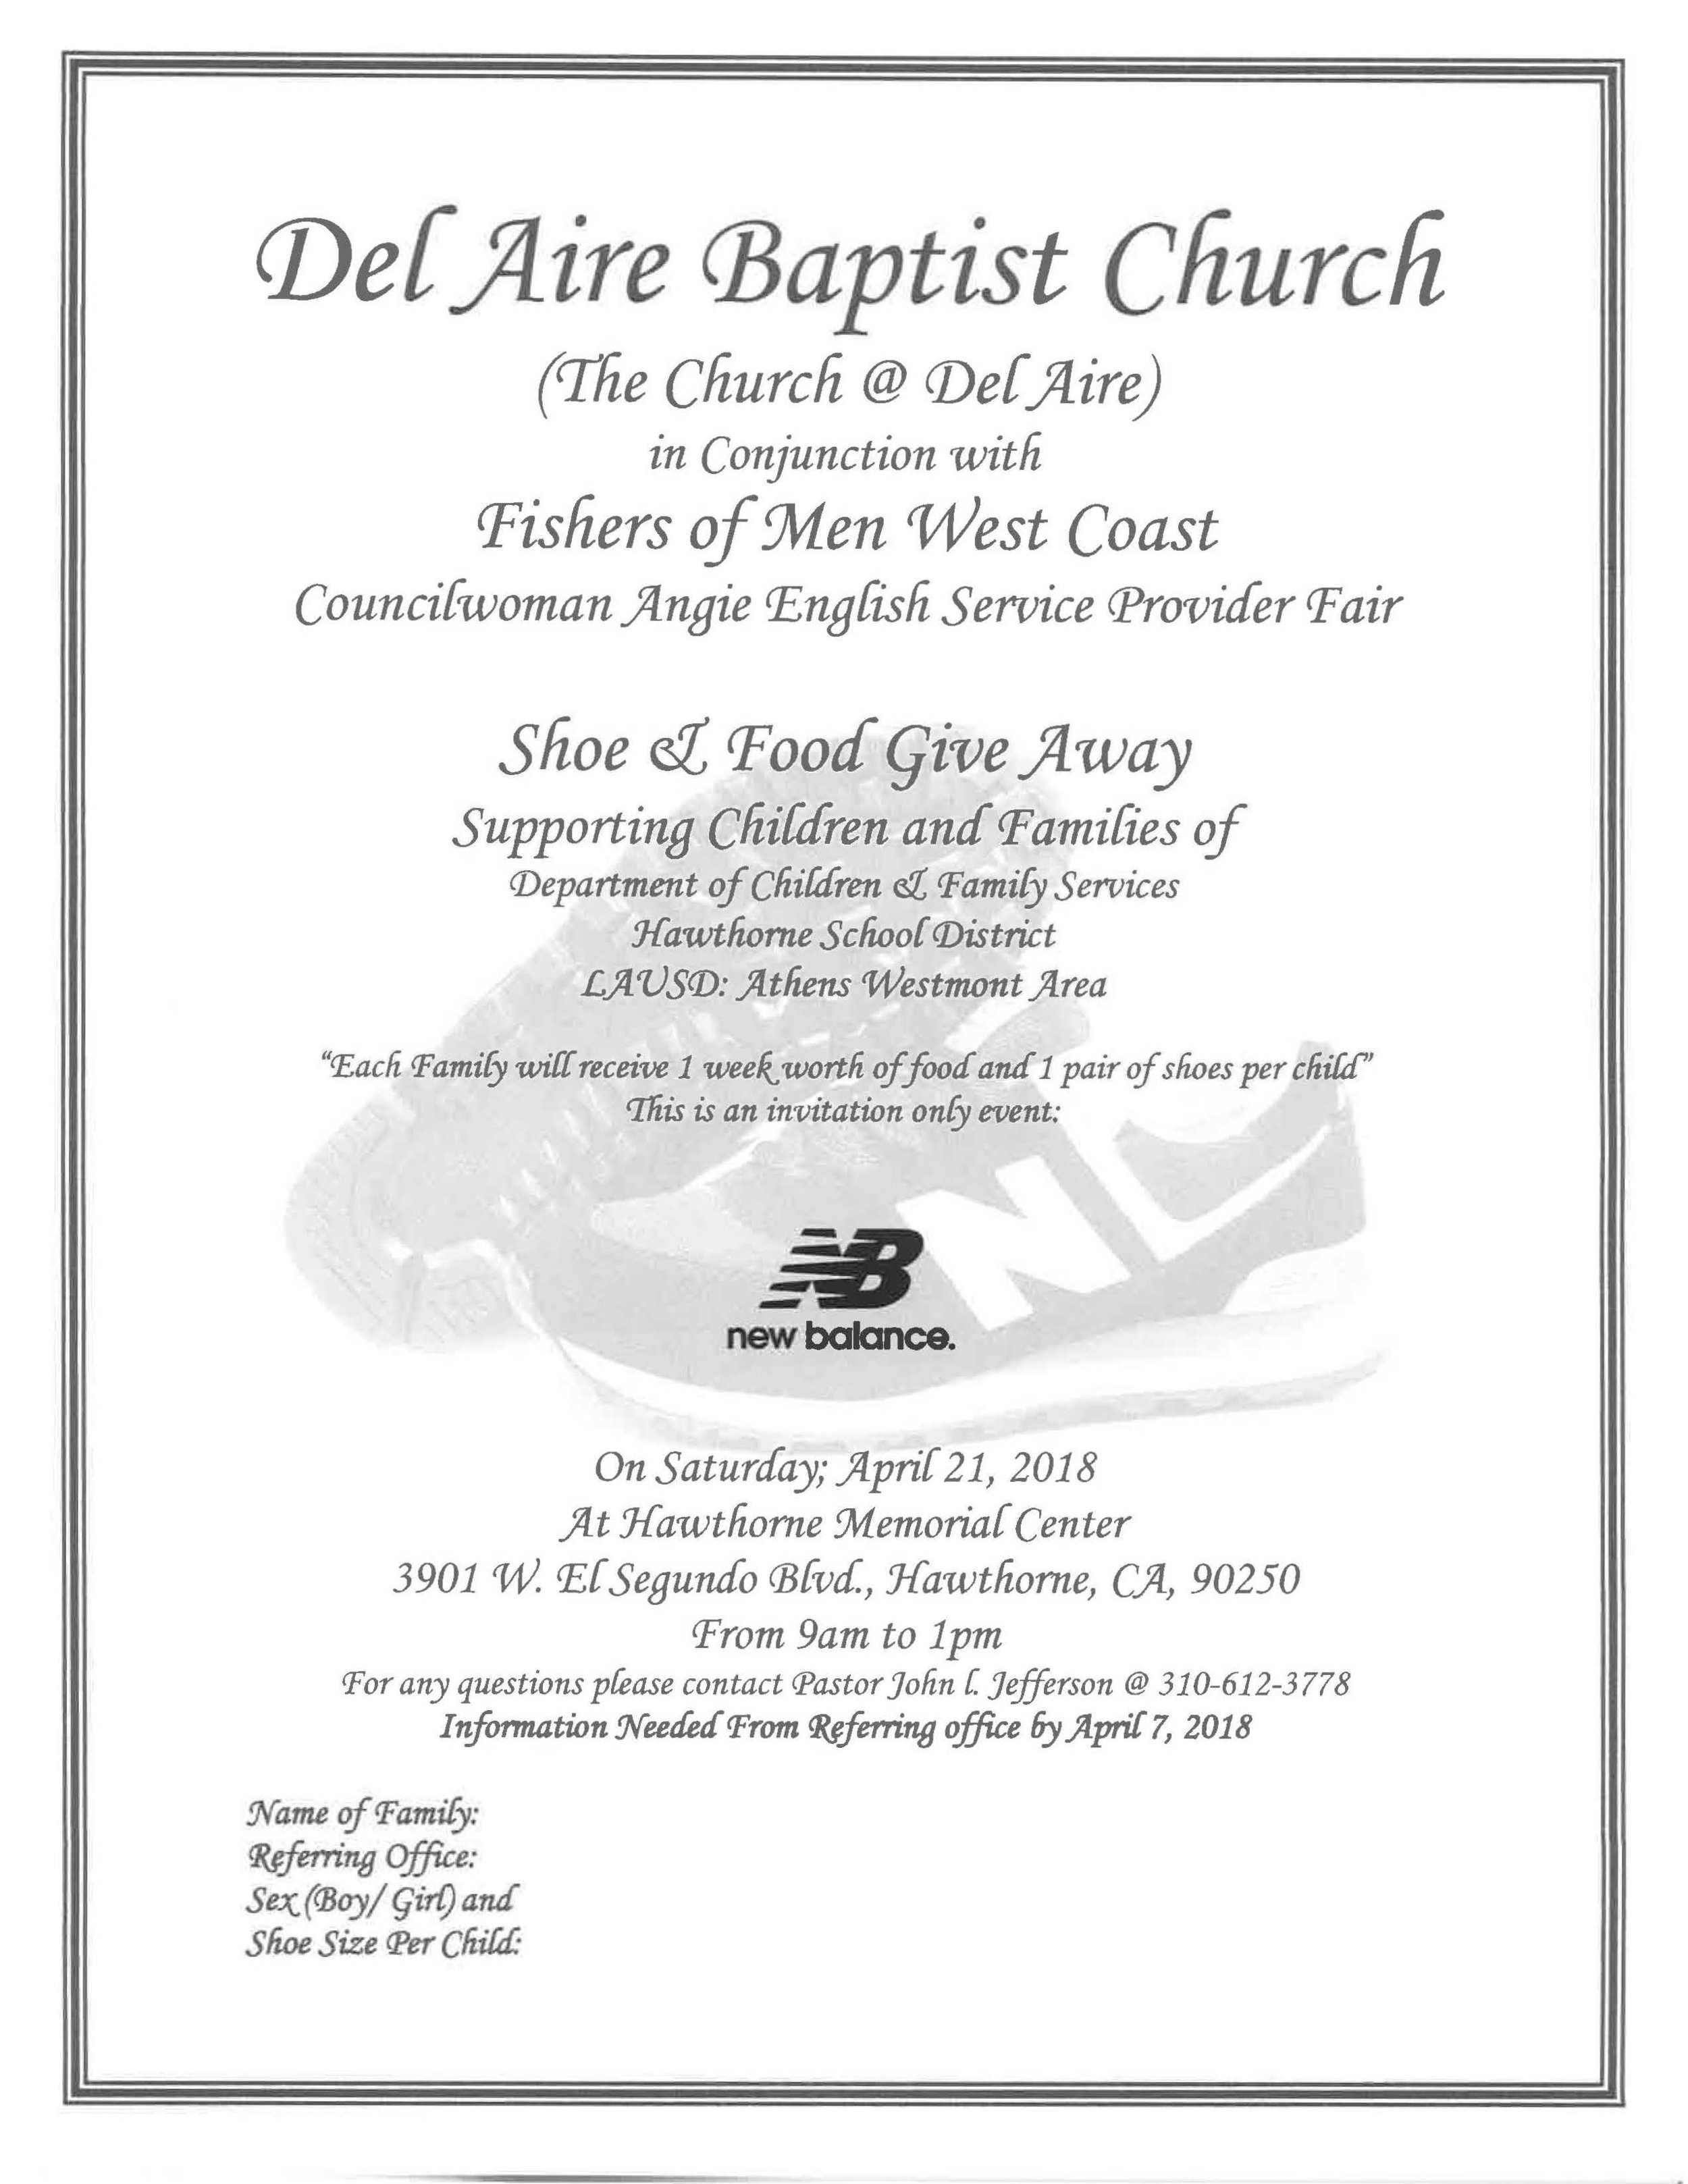 Del Aire Baptist Church Shoe & Food Give Away